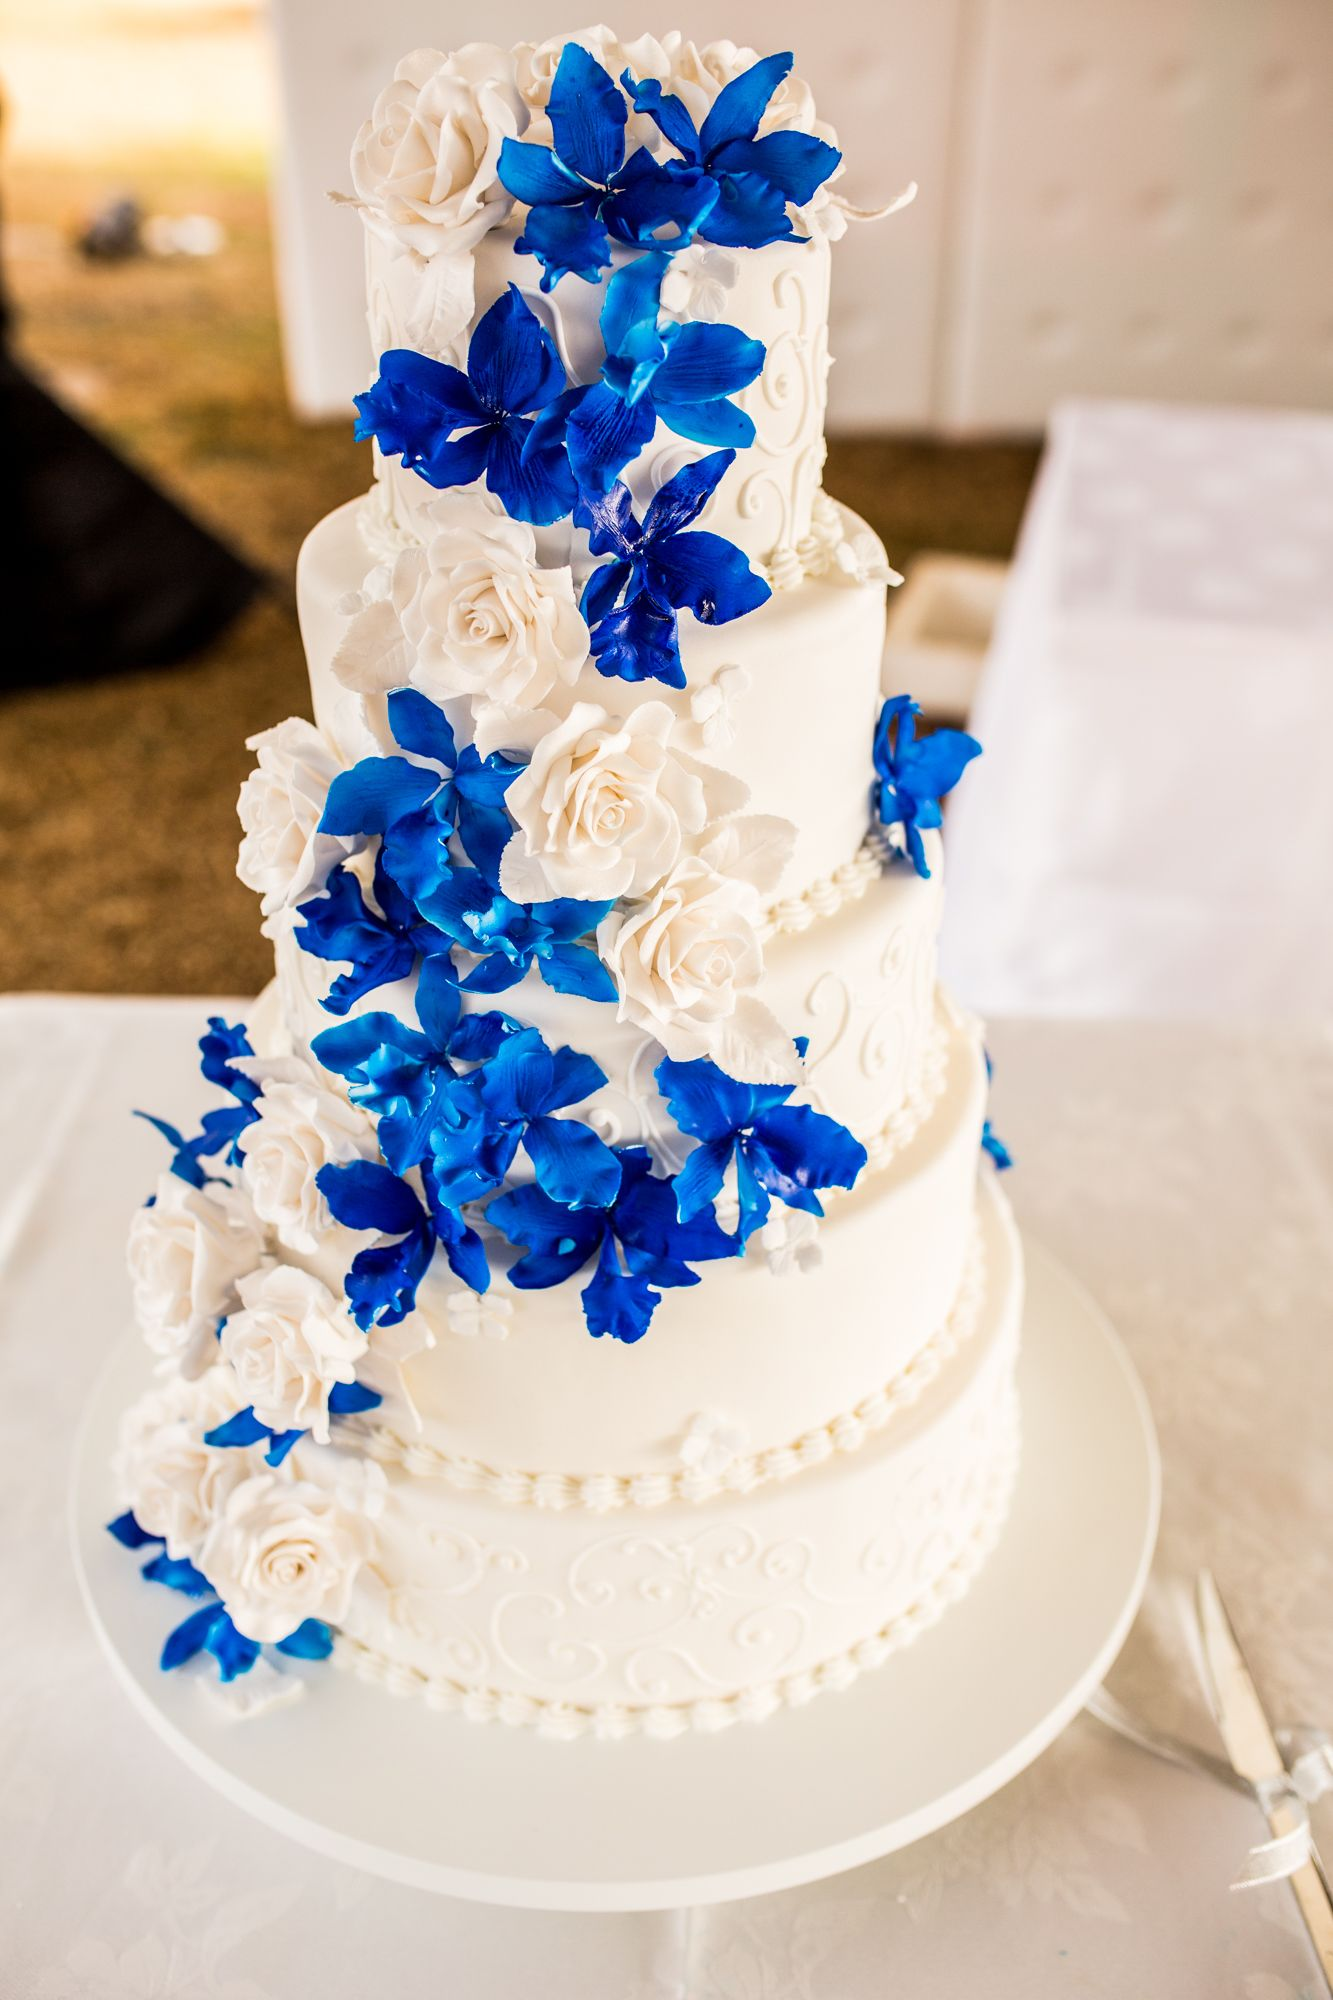 Blue Orchid Wedding Cake Cool Wedding Cakes Orchid Wedding Cake Yellow Wedding Cake